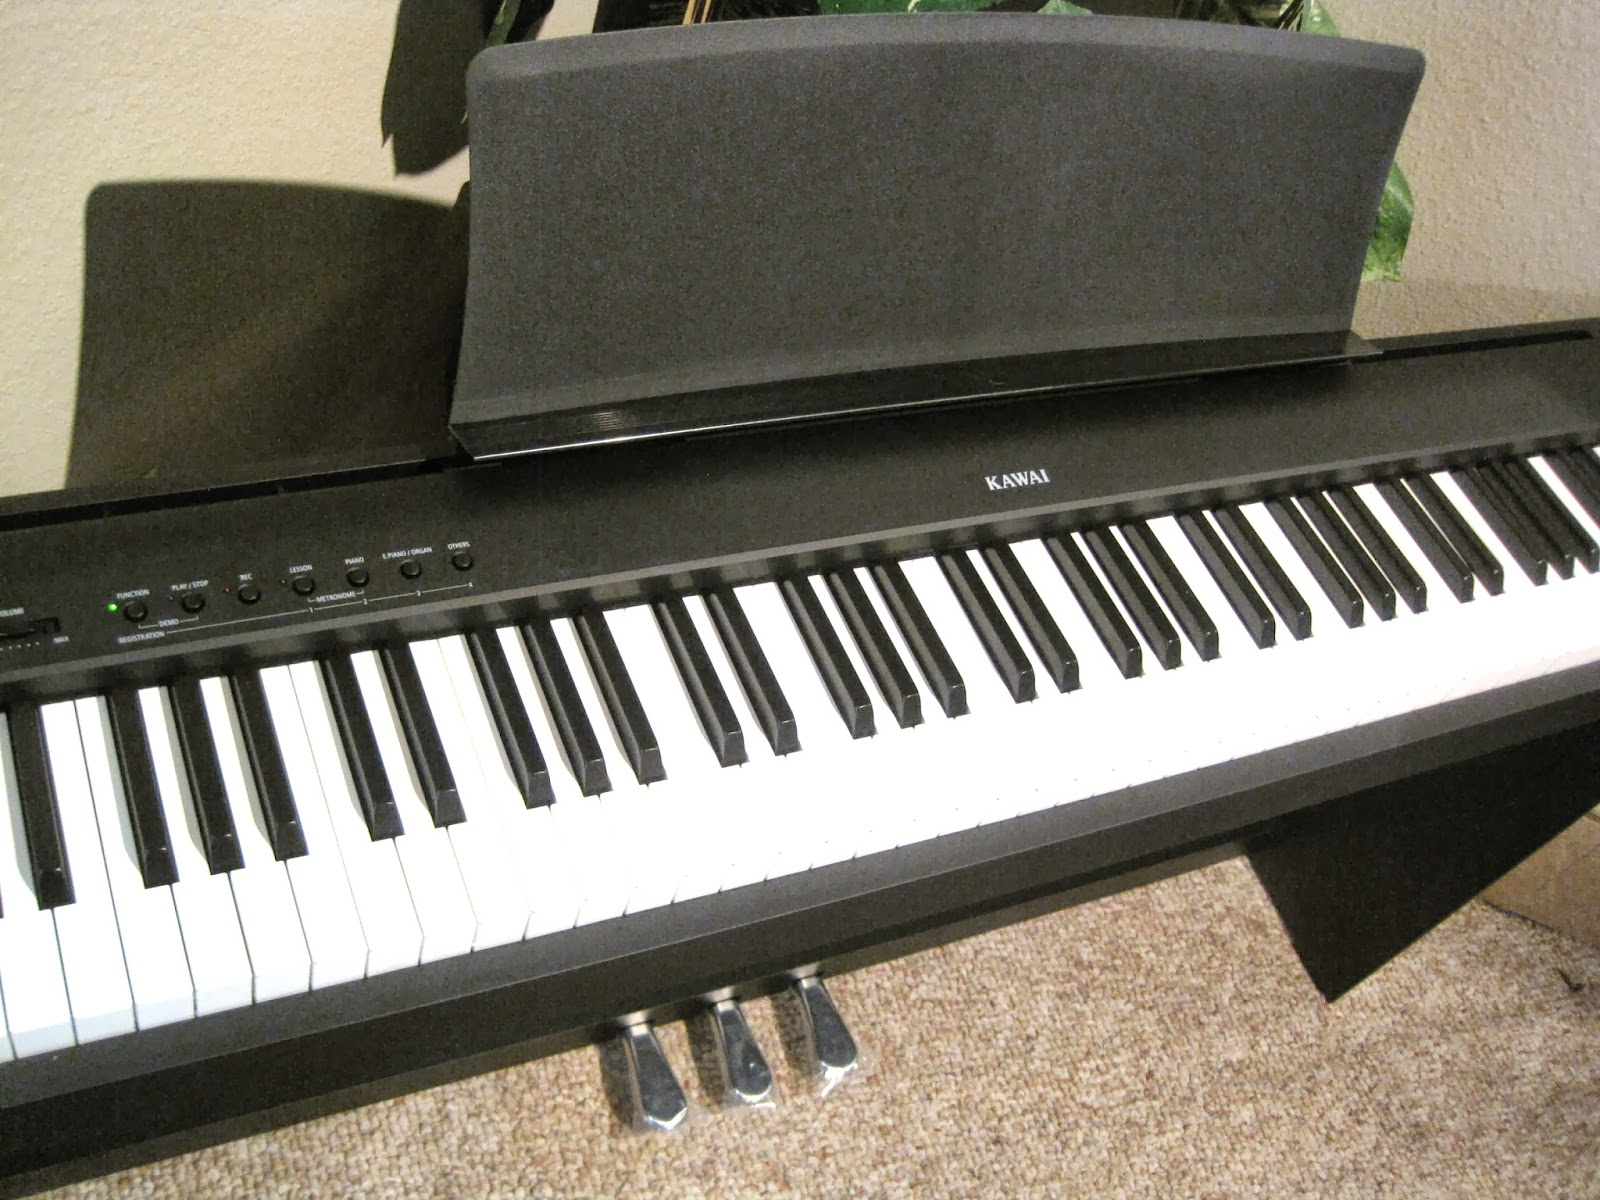 az piano reviews review kawai es100 portable digital piano recommended as a best buy. Black Bedroom Furniture Sets. Home Design Ideas